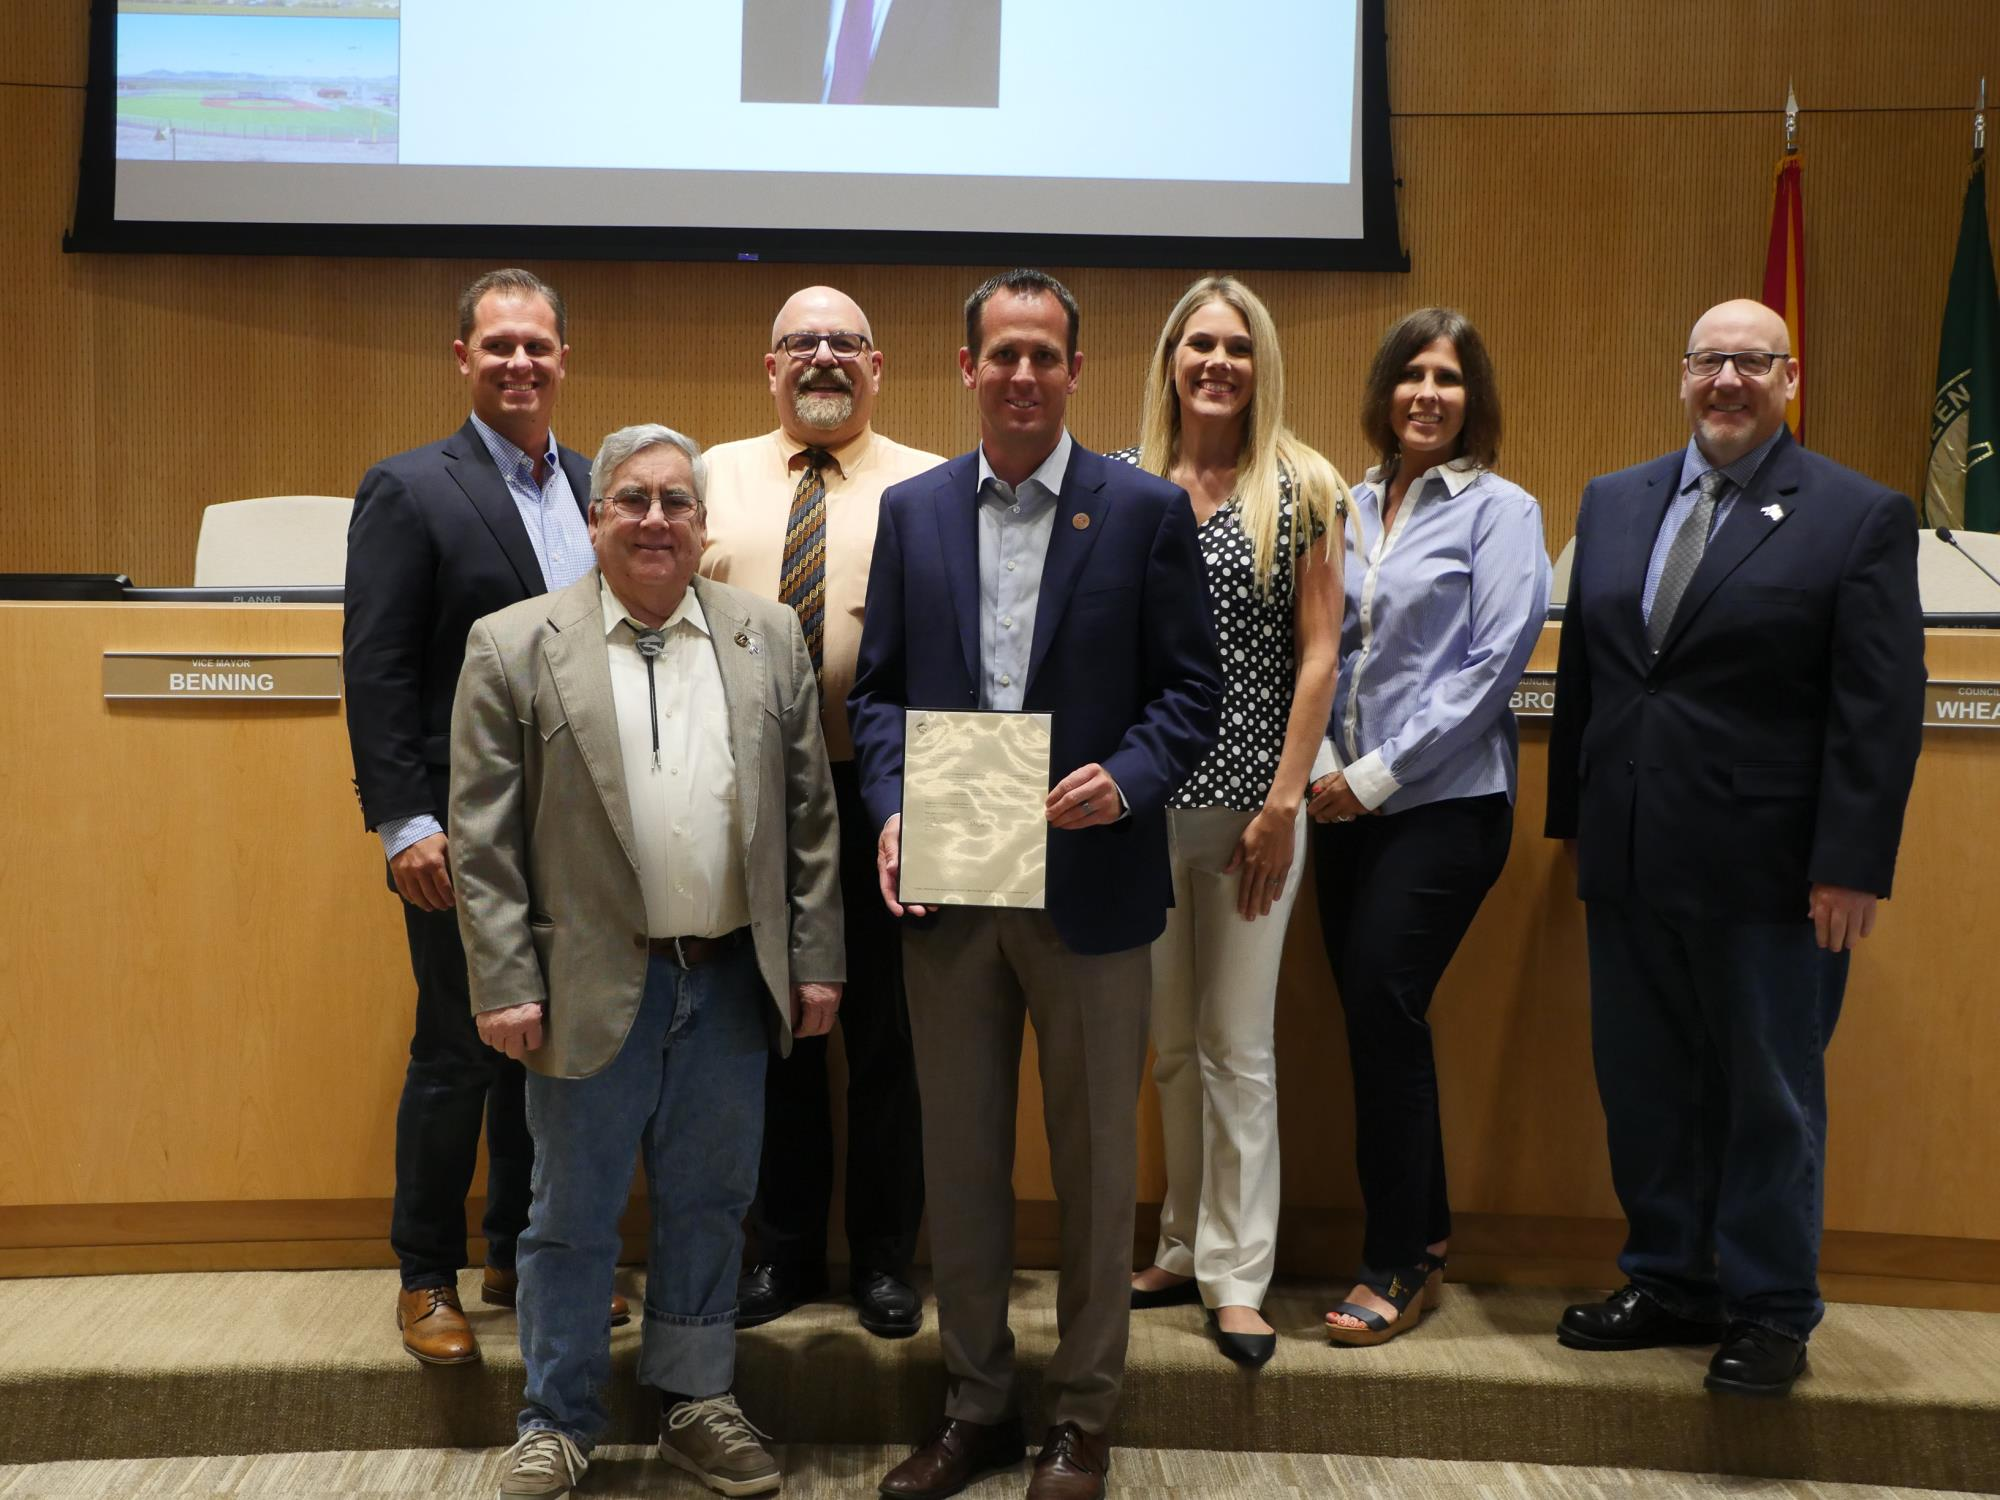 01 - Mayor Barney and the Town Council recognizing Representative Grantham at the August 7 Town Council Meeting